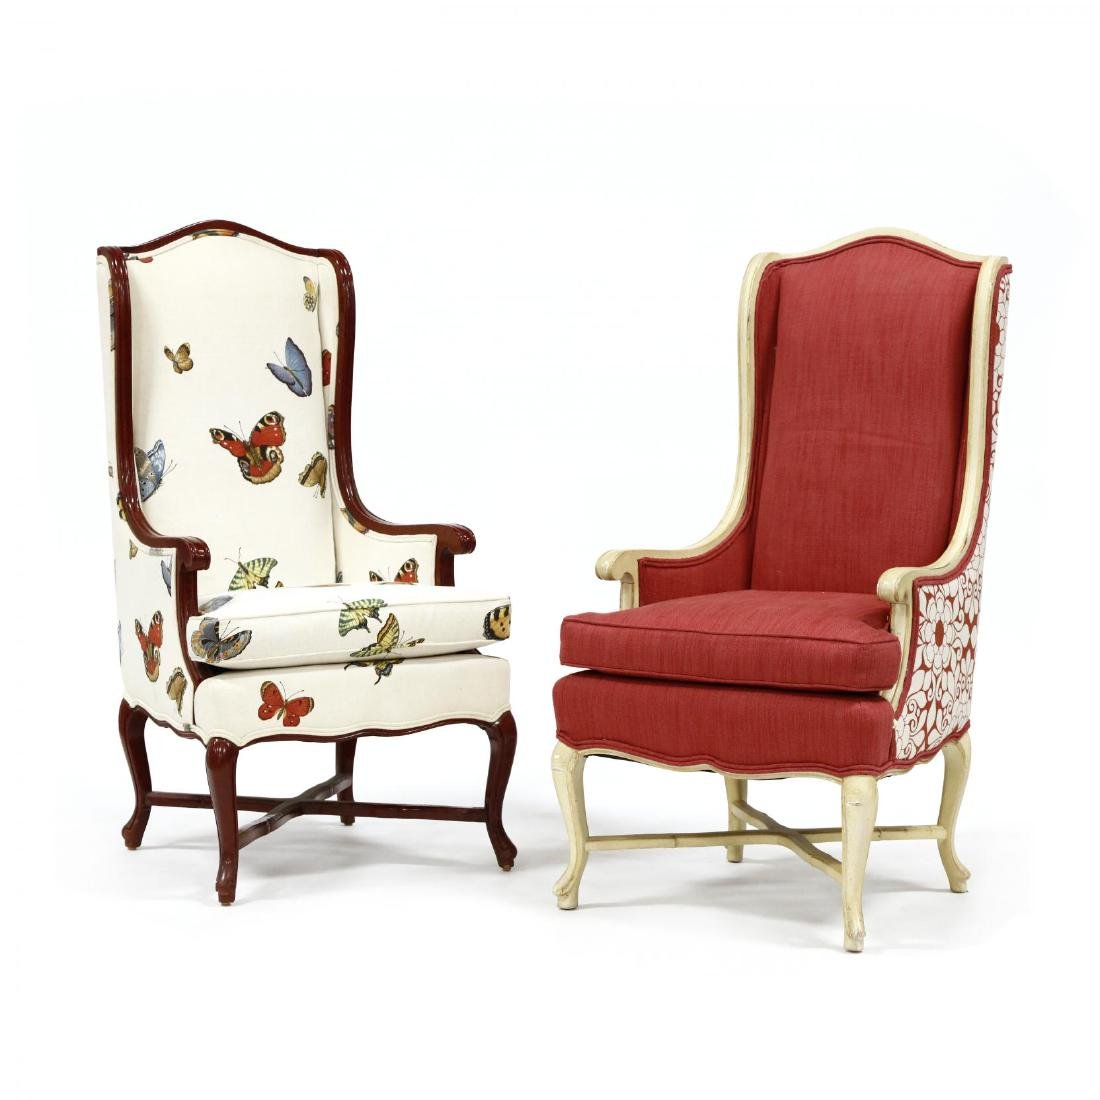 Century Furniture Co., Pair of French Provincial Style